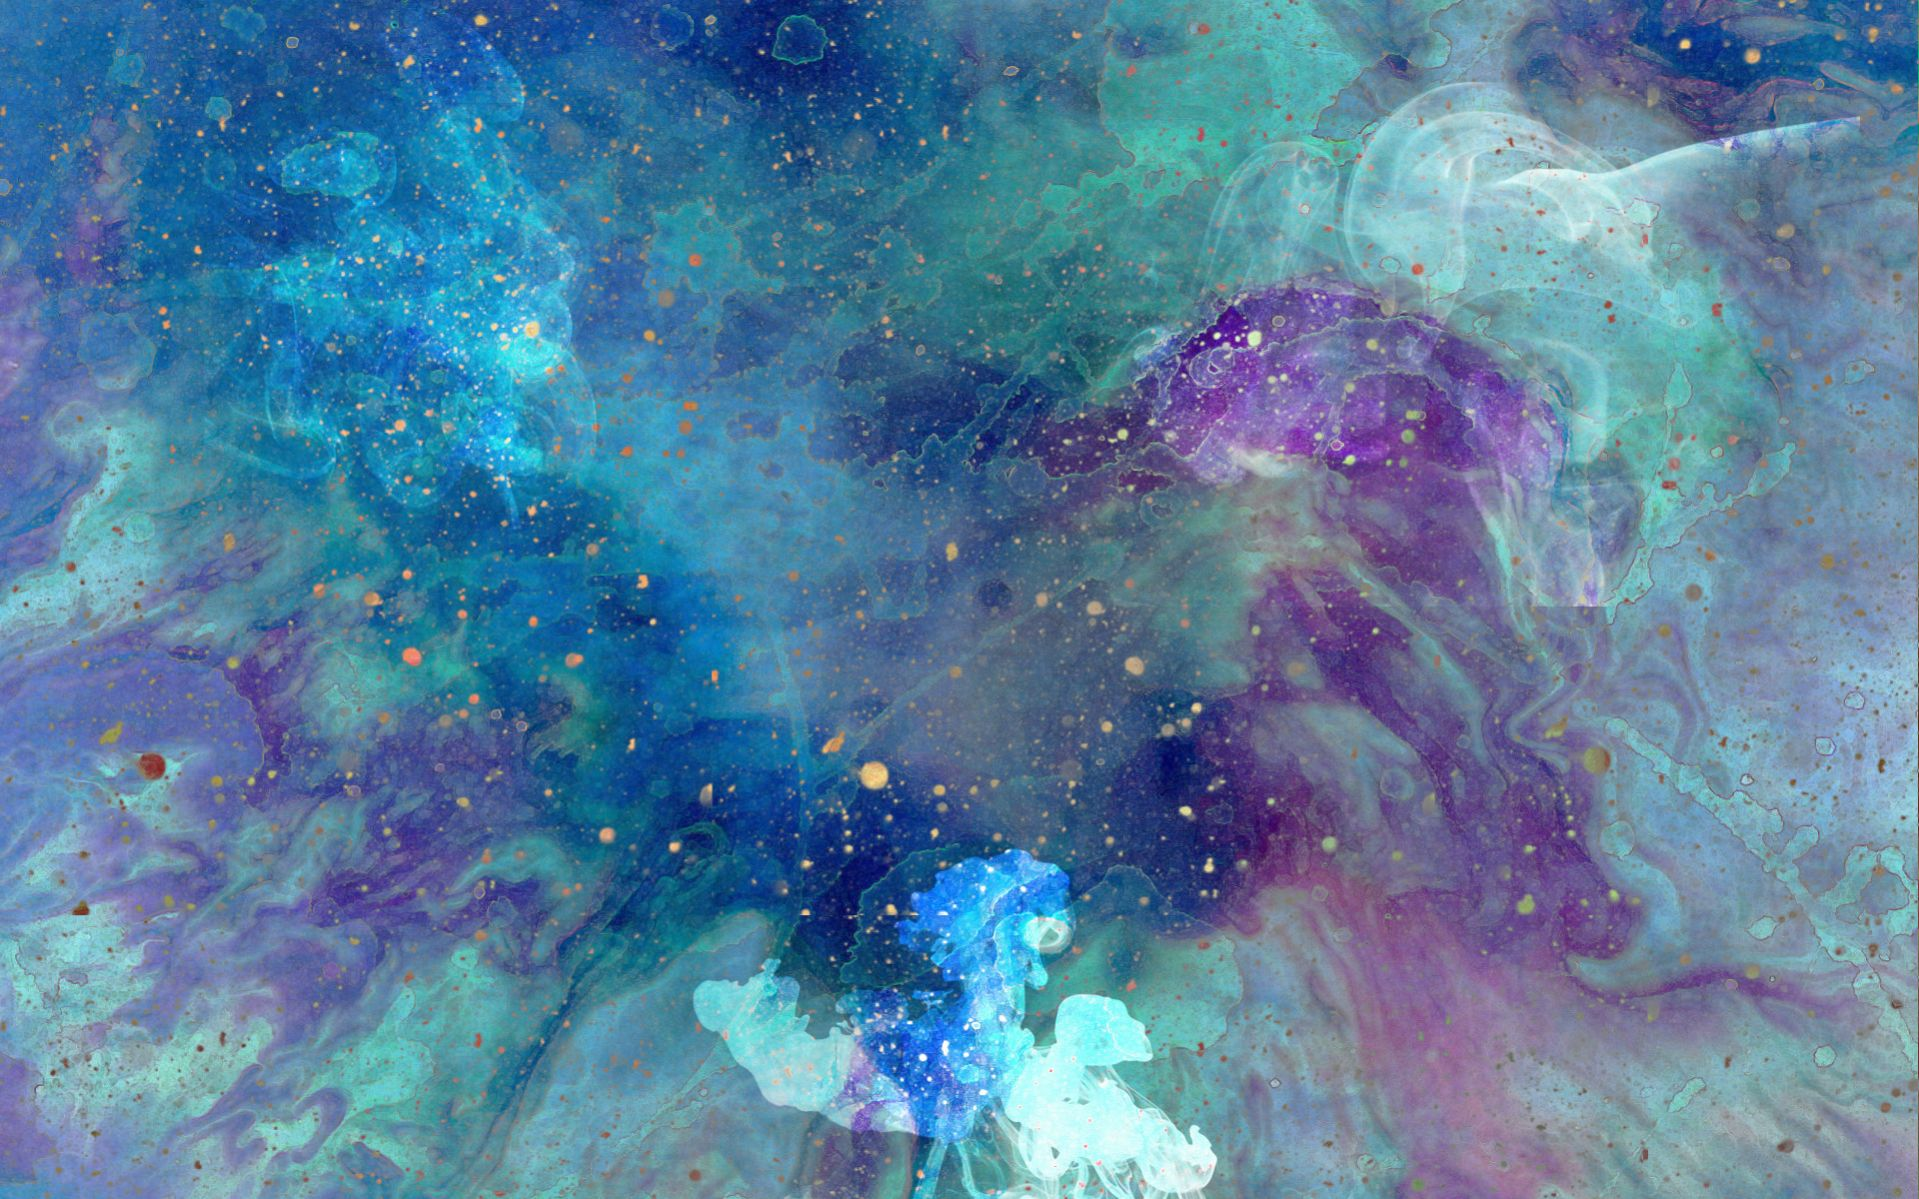 Tumblr tie dye iphone wallpaper - Trippy Alien Wallpaper Enjoy This Trippy Wallpaper I